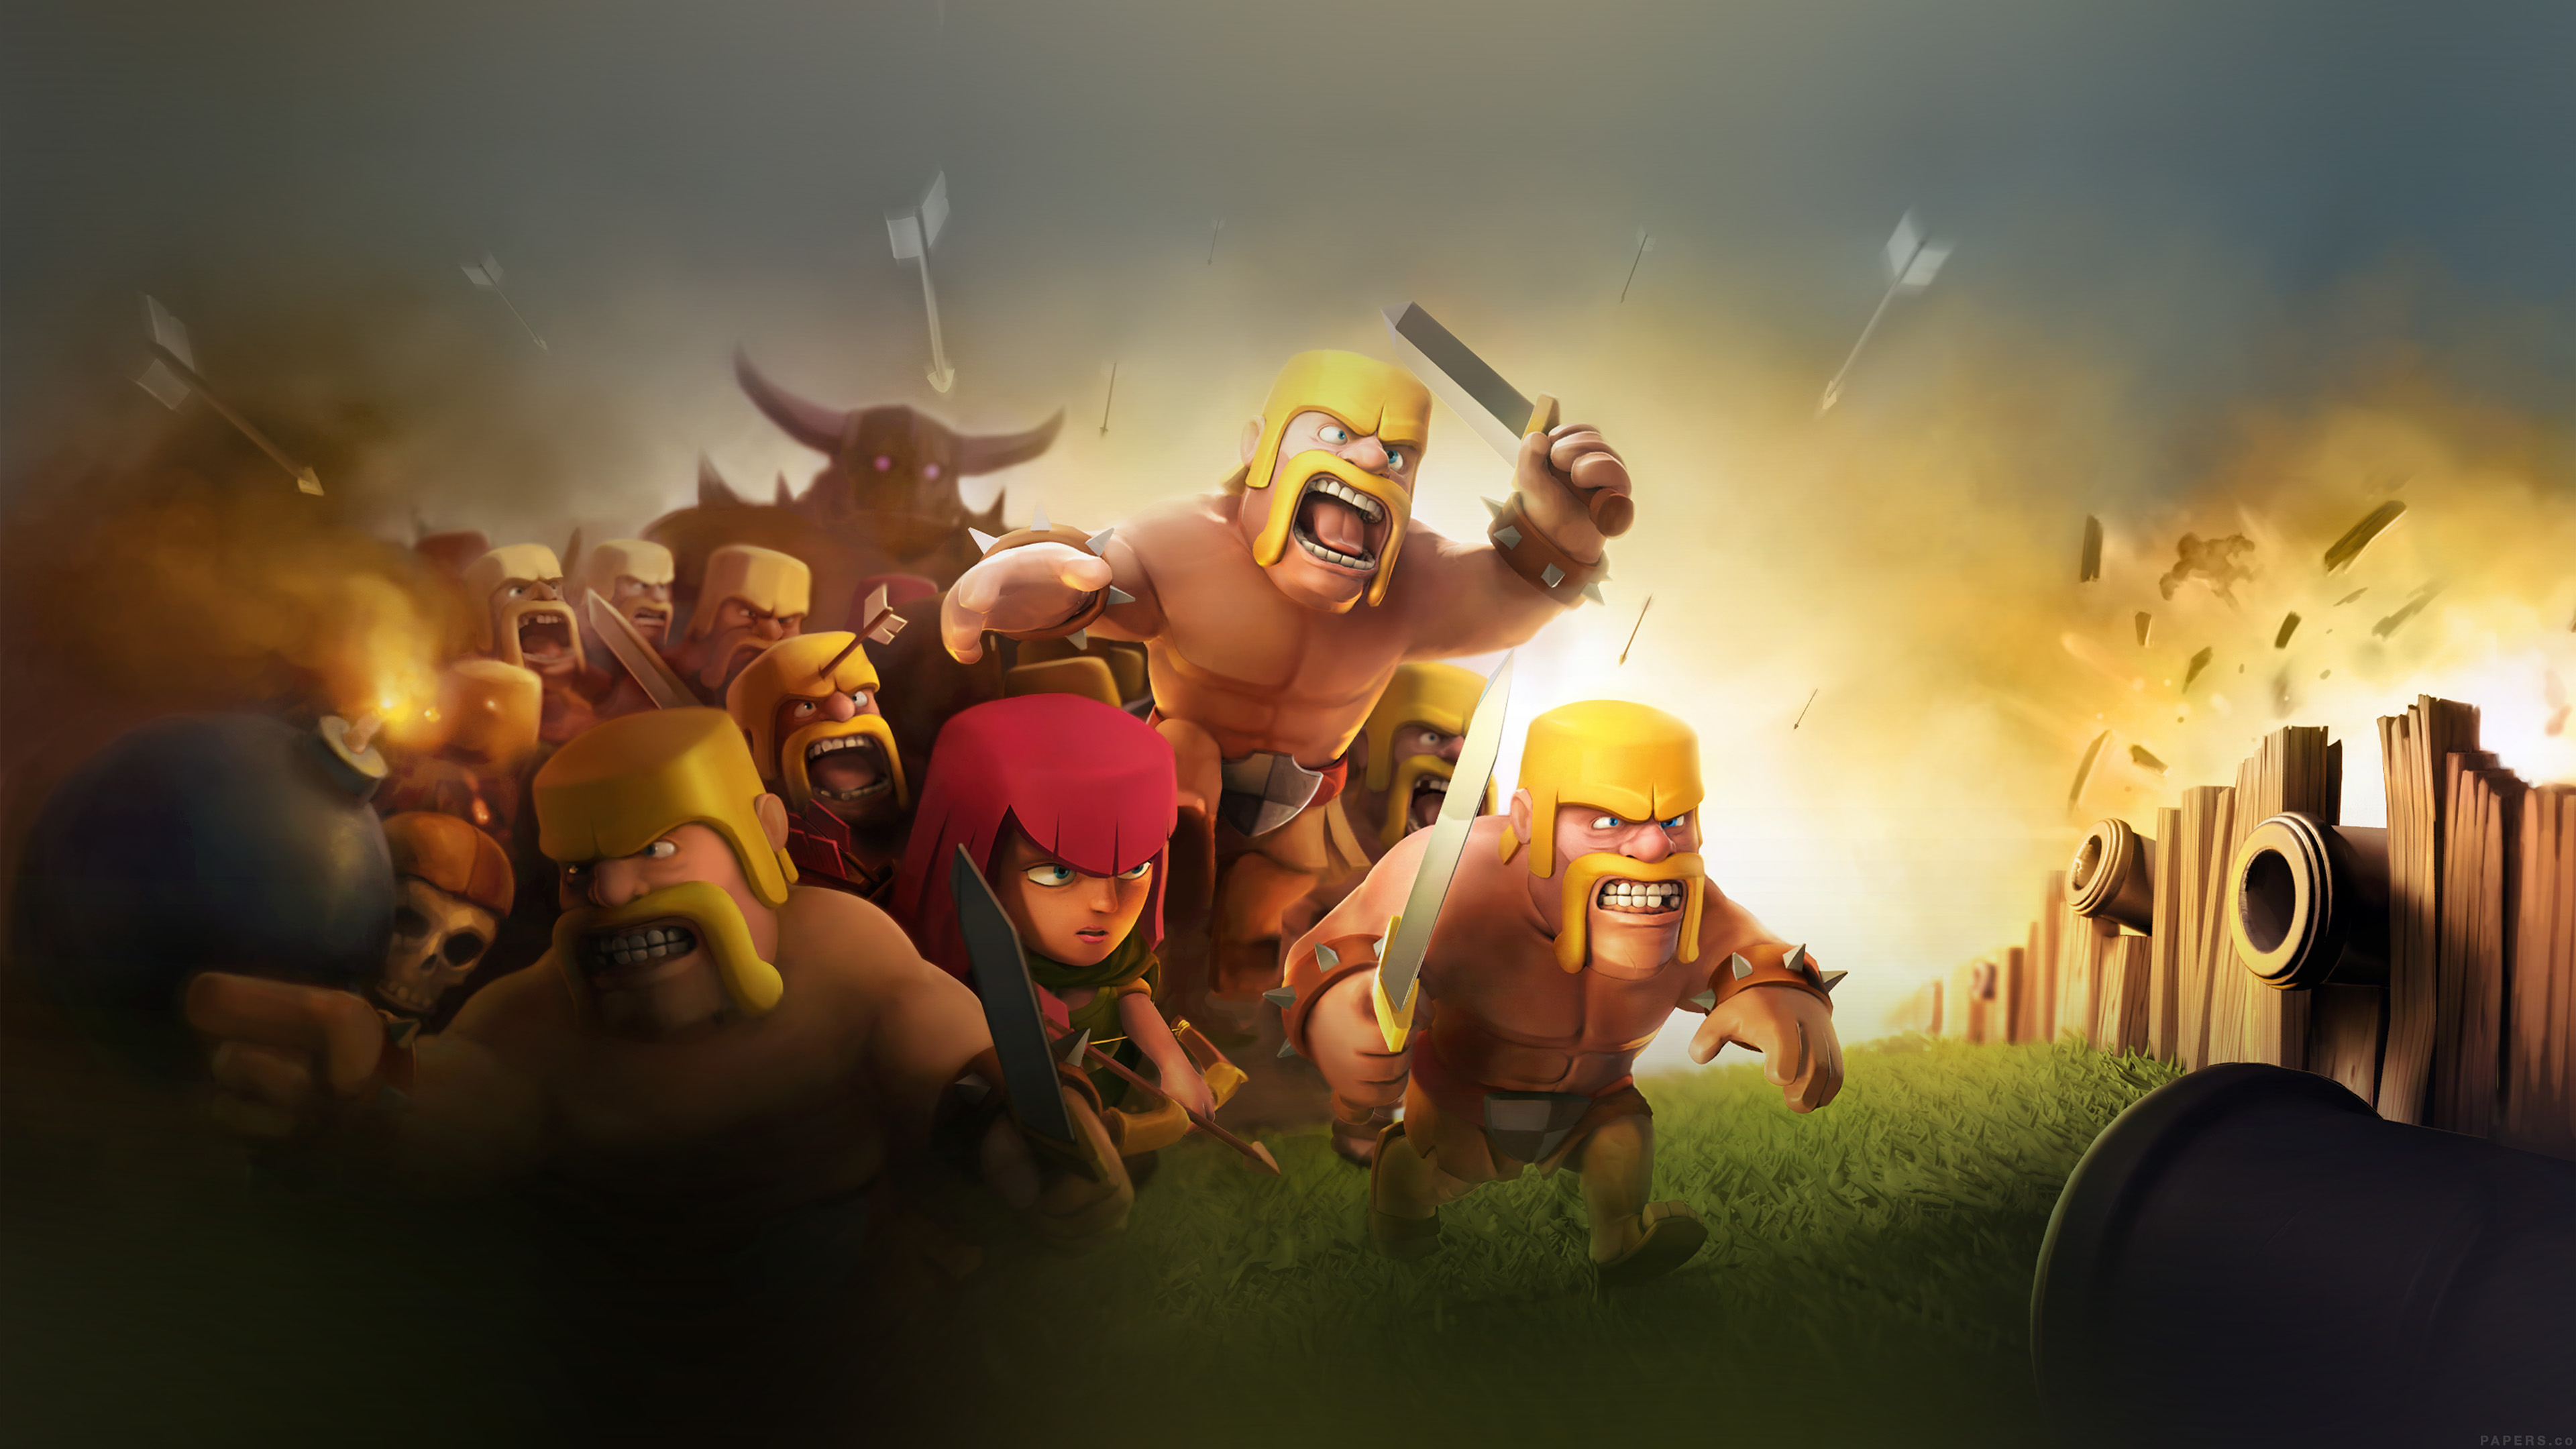 Simple Fall Hd Wallpaper Ak27 Clash Of Clans War Game Art Illust Cute Papers Co